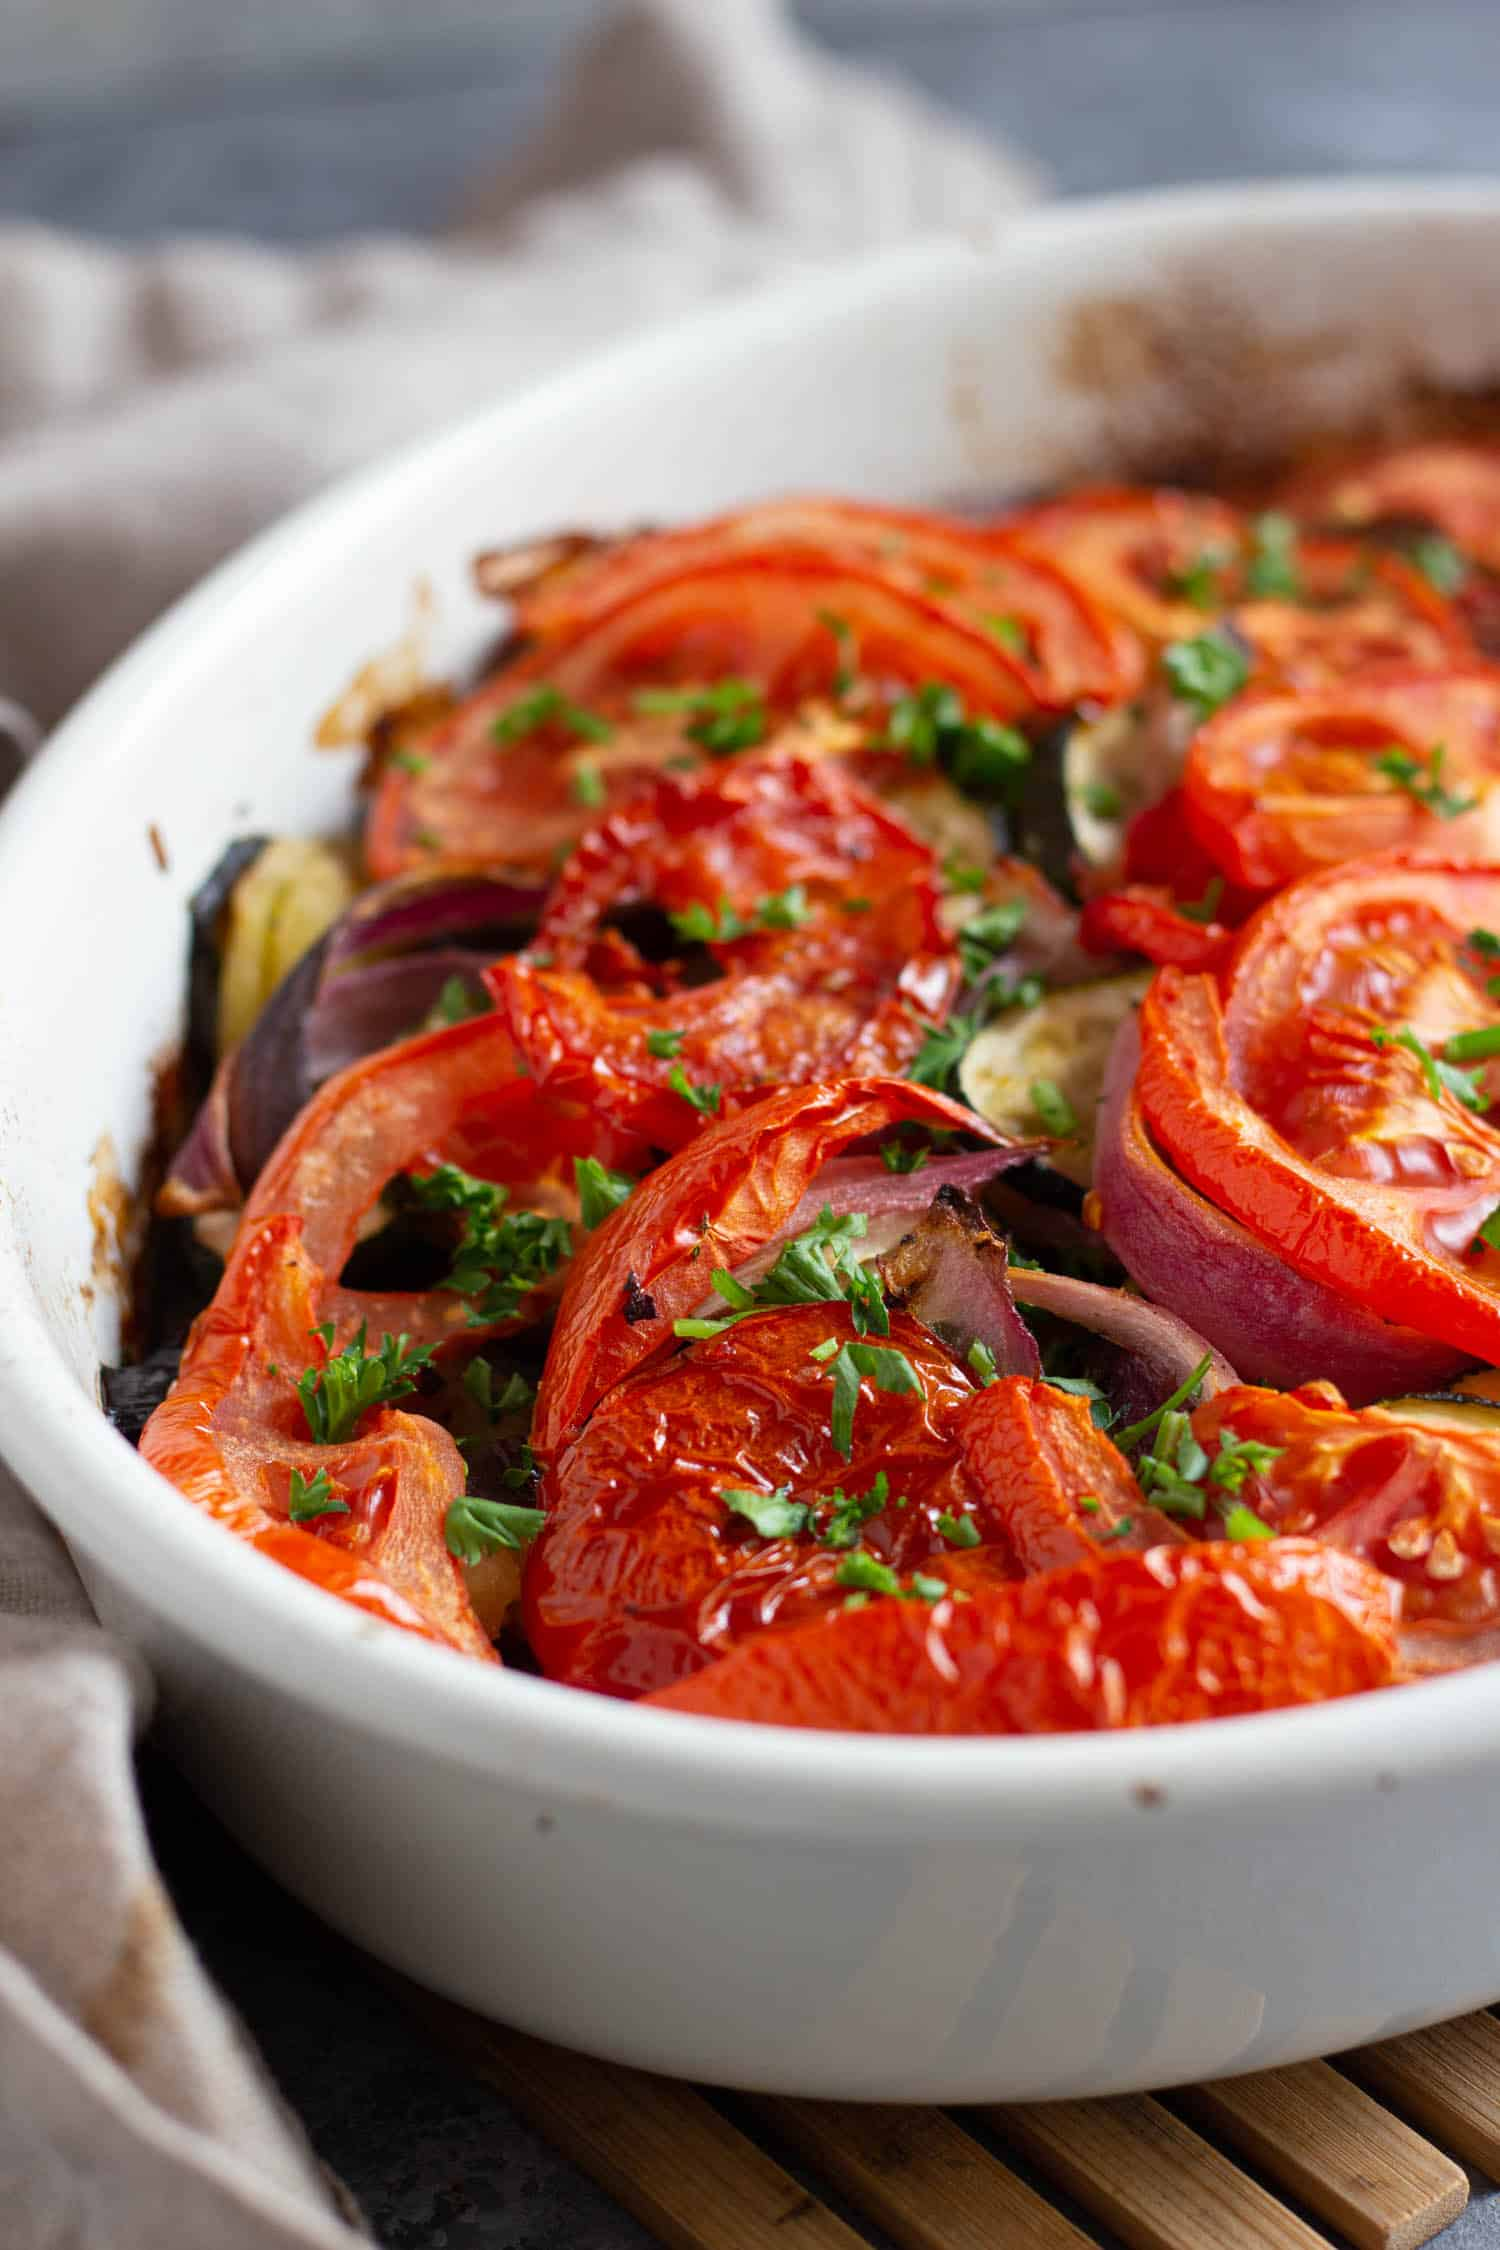 This dish is topped with tomatoes and onions for more flavor.